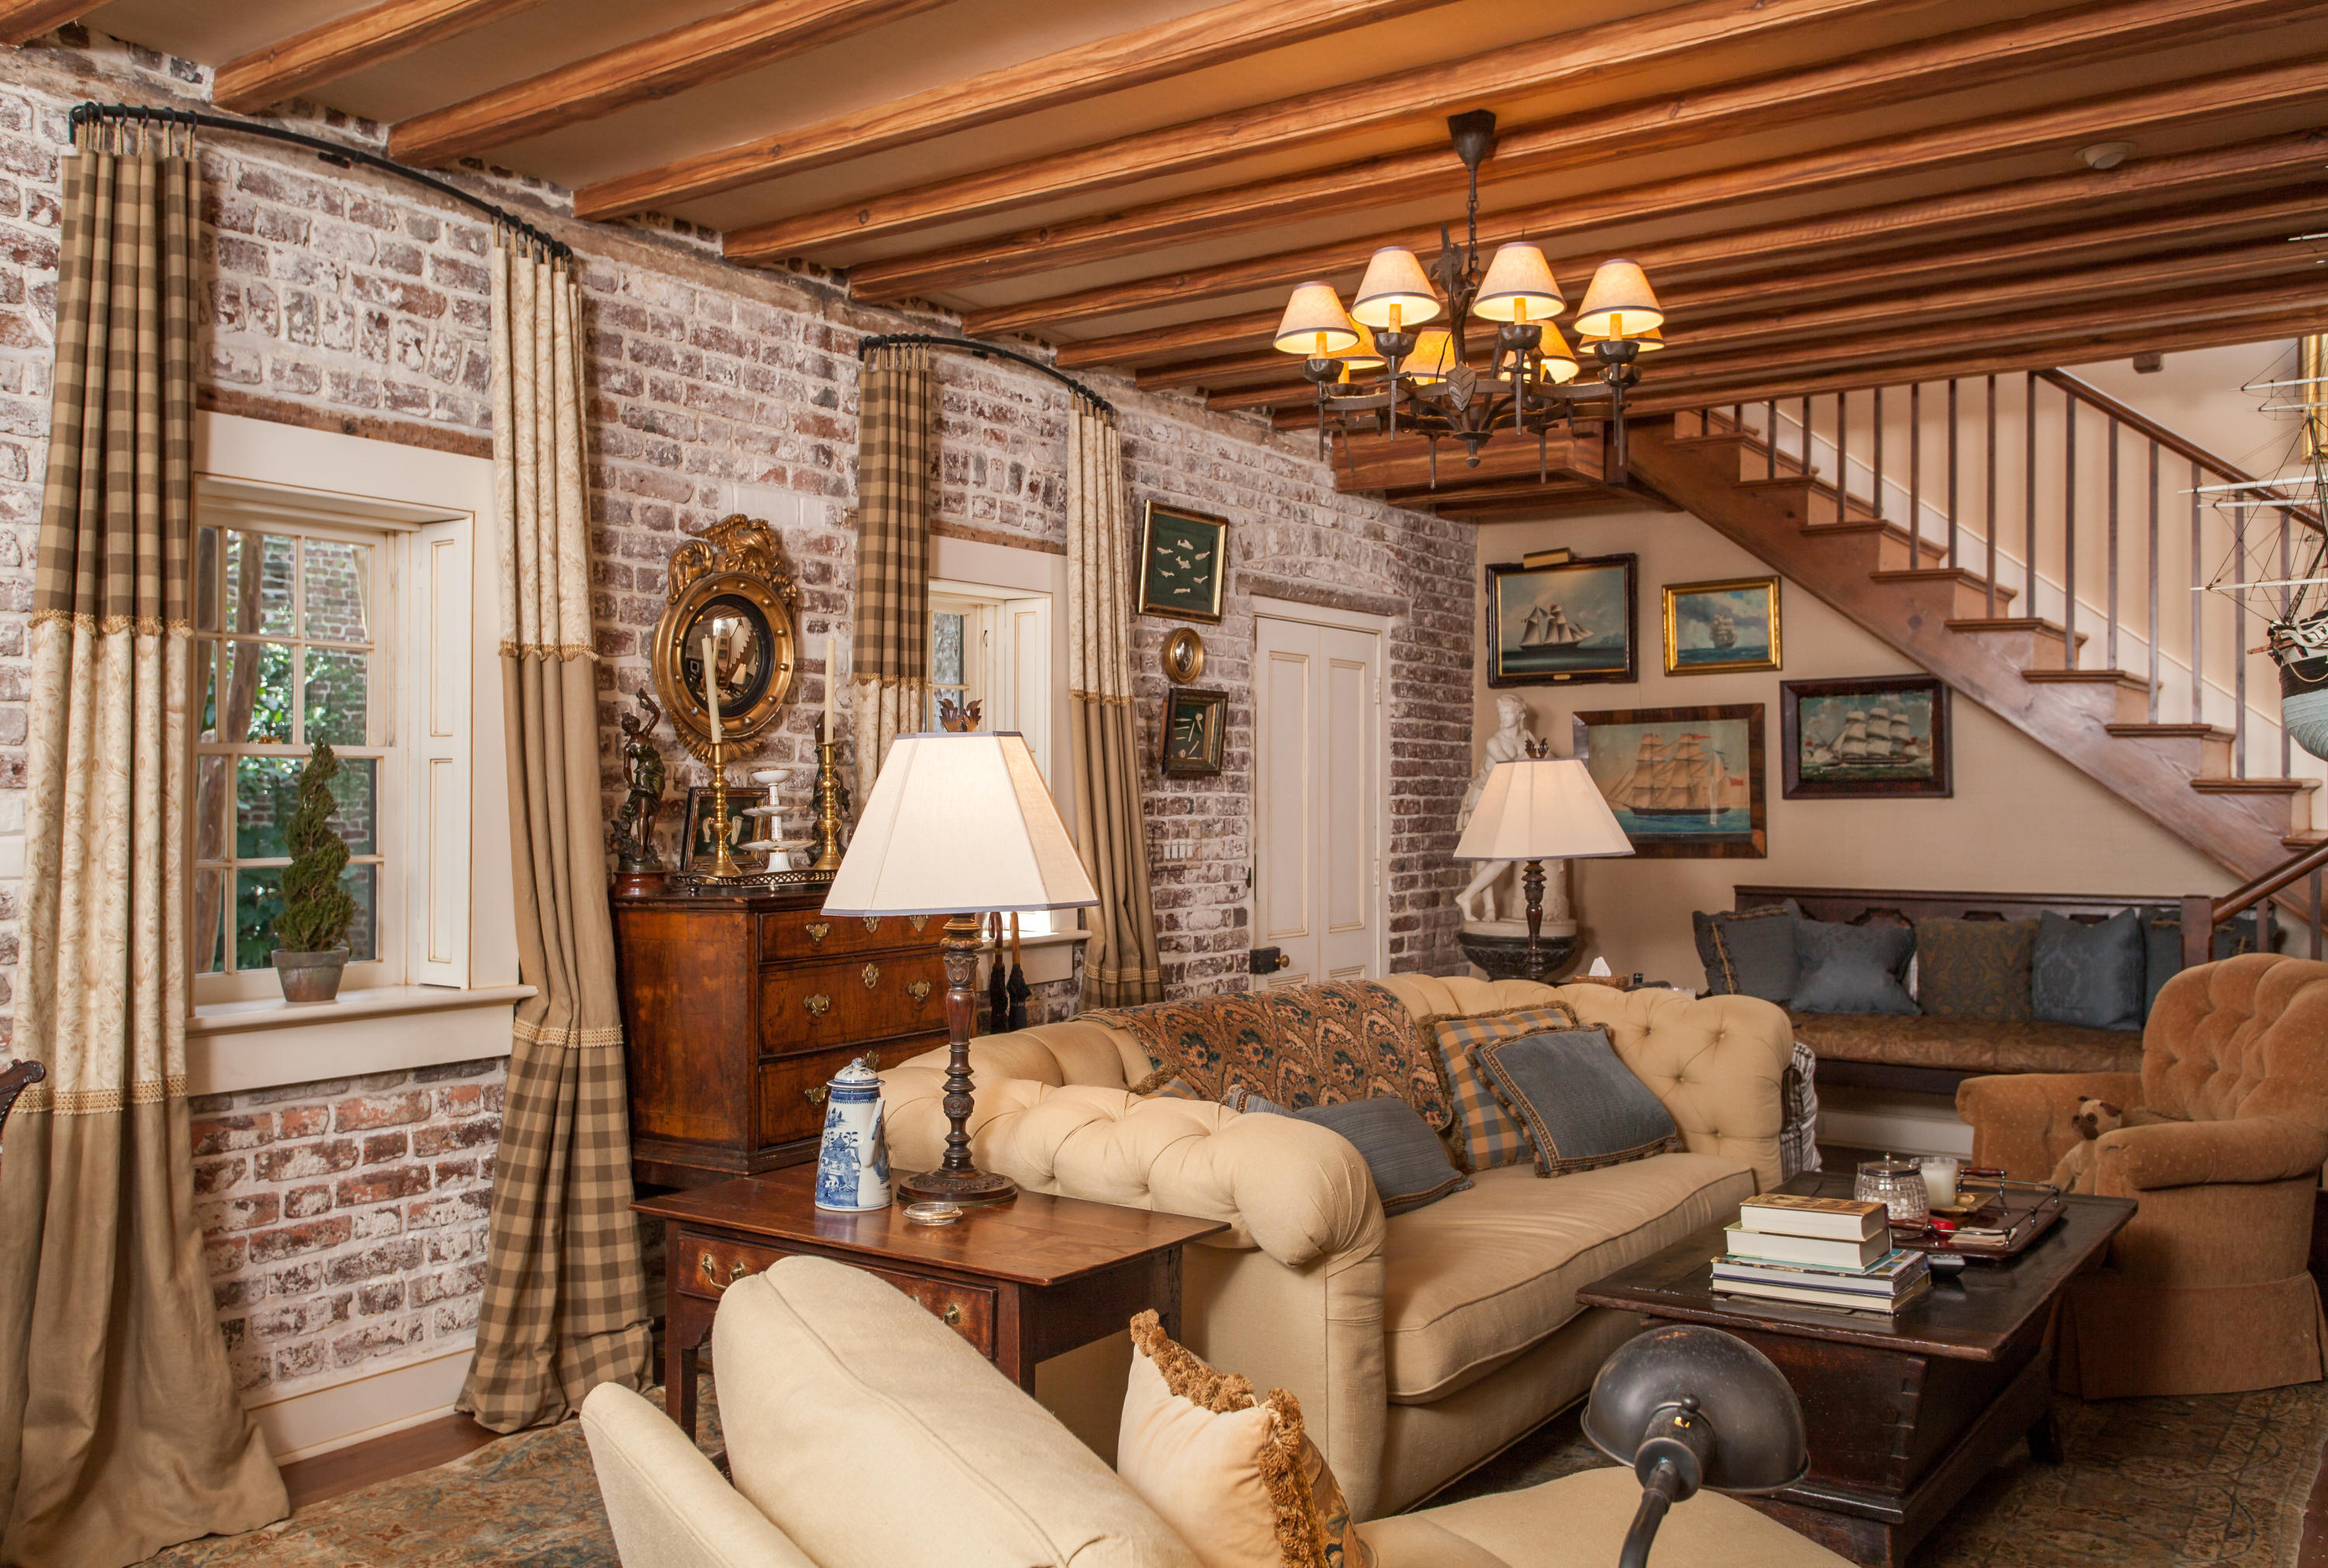 Home for sale 32 Legare Street, South Of Broad, Downtown Charleston, SC